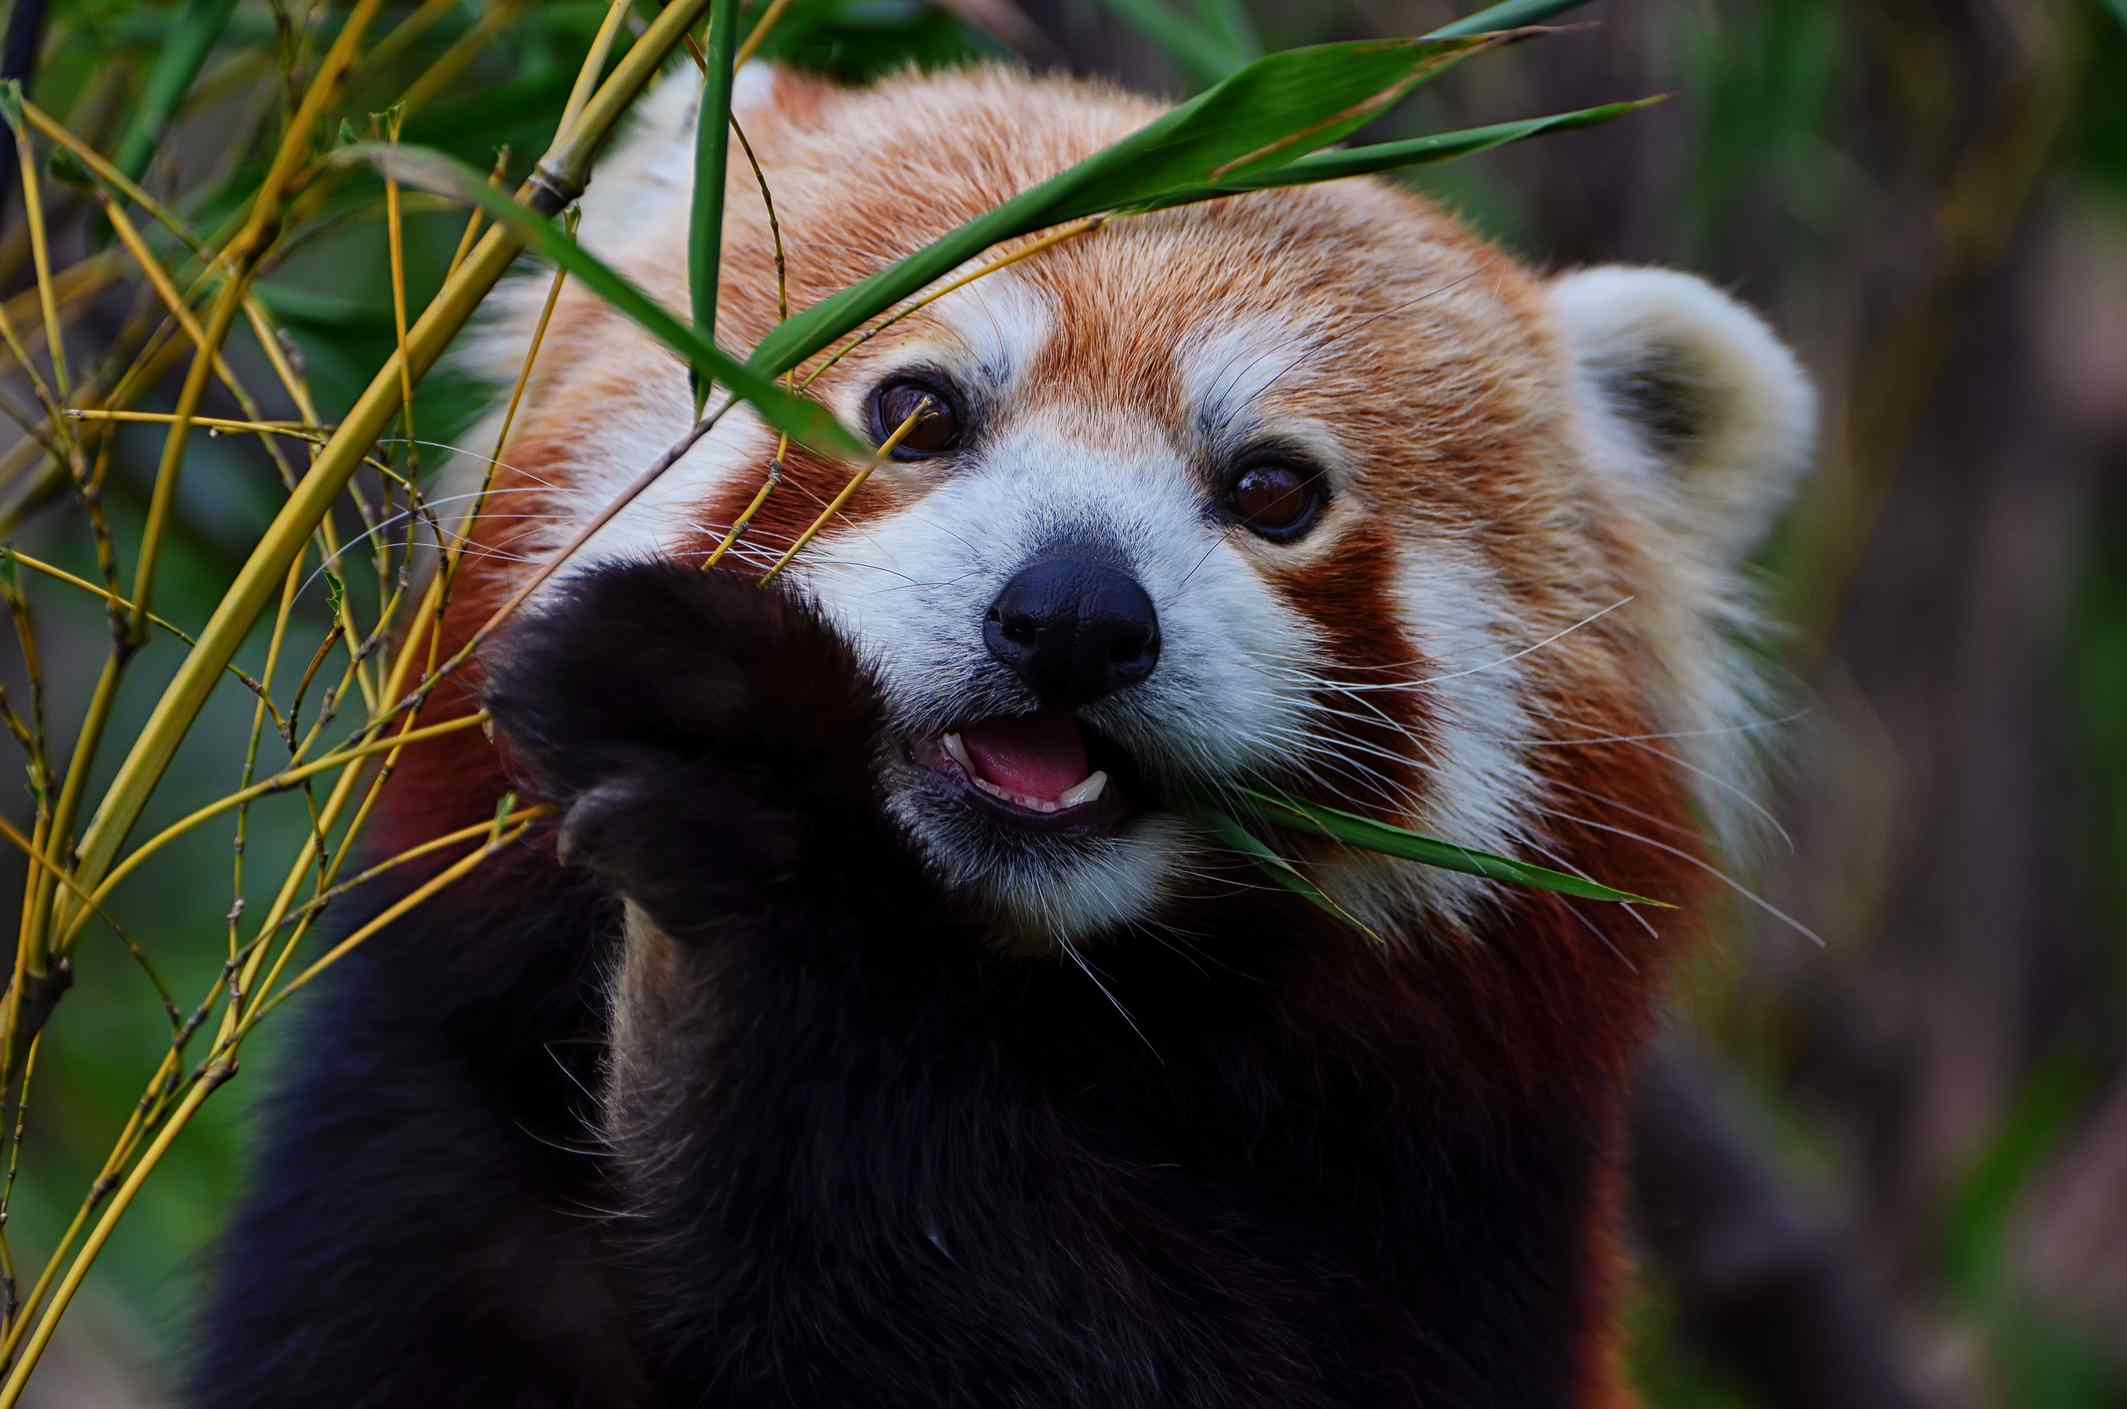 A red panda eating bamboo leaves